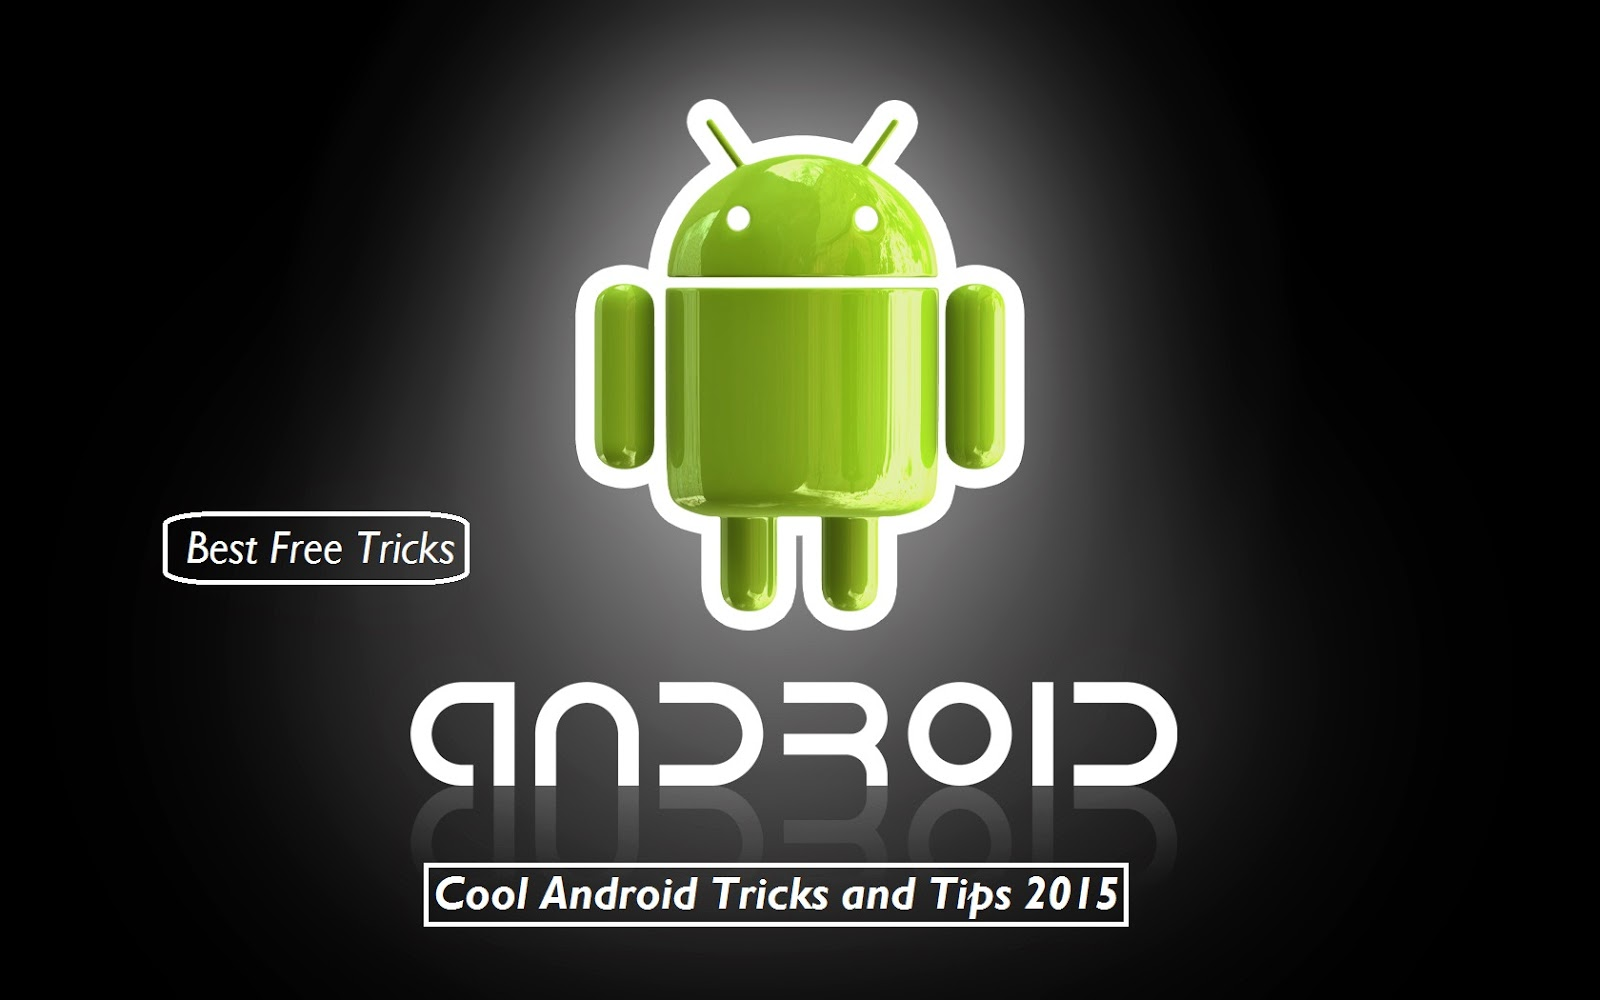 best android tricks 2015 cool android tricks 2015 android hidden tricks 2015 android tricks 2015, top android tricks 2015, hidden android tricks